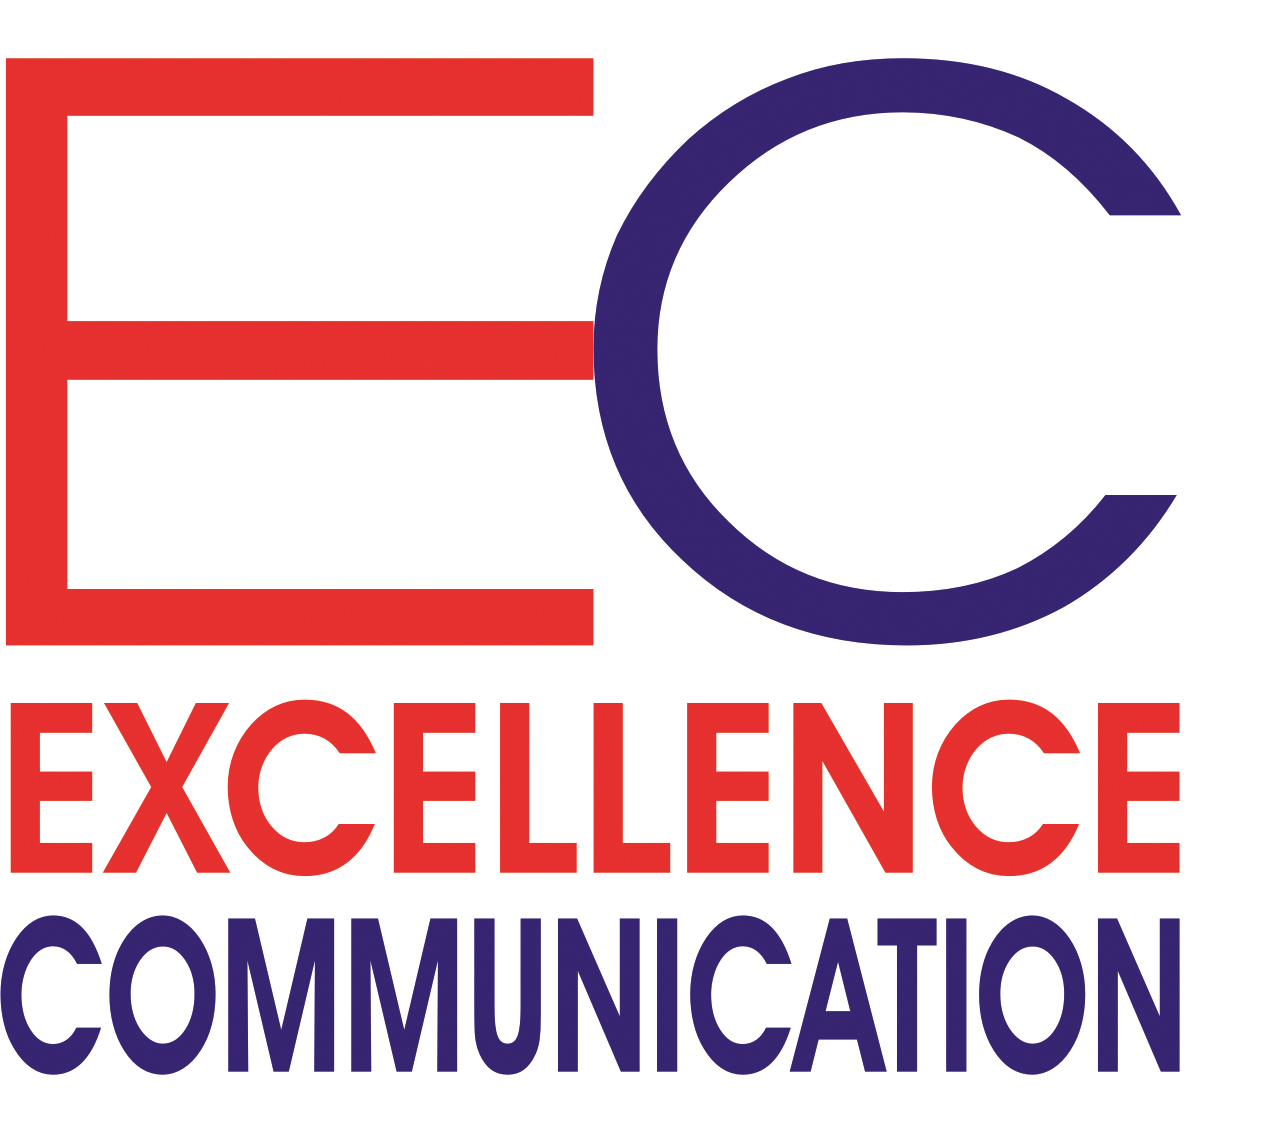 Bologna - Tel. & fax 051 543101 e-mail: e.communication@fastwebnet.it www.excellencecommunication.